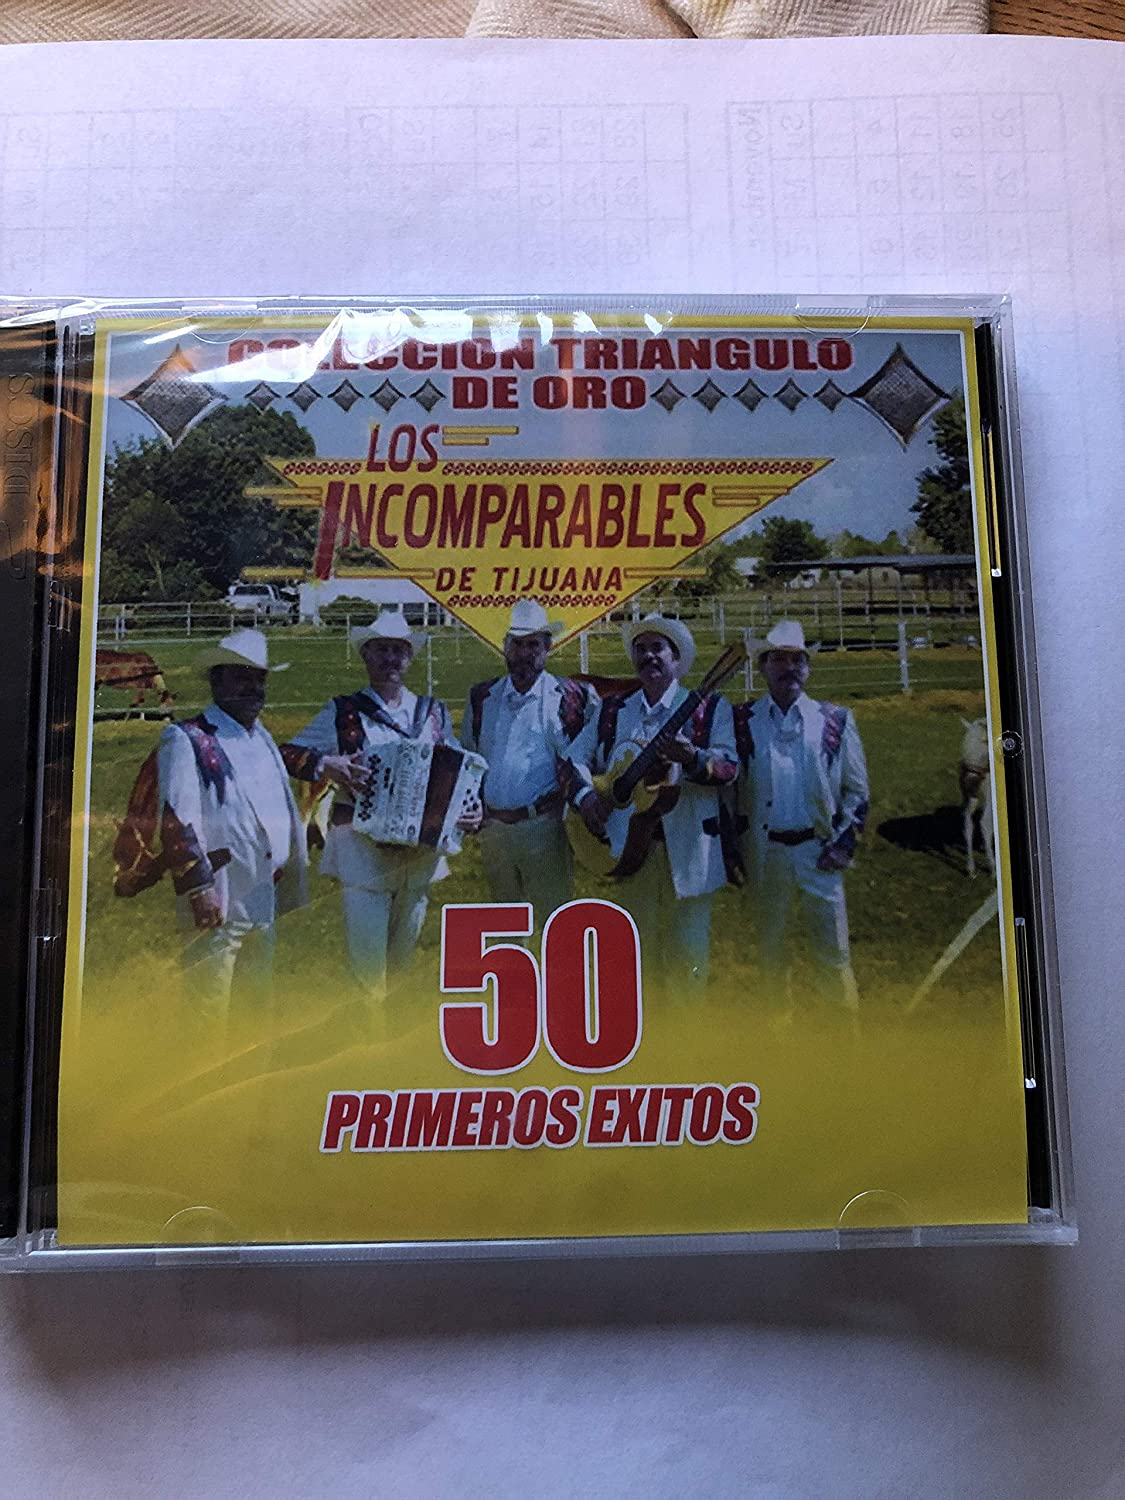 Los incomparables de tijuana - Los incompareables de tijuana 50 primeros exitos - Amazon.com Music